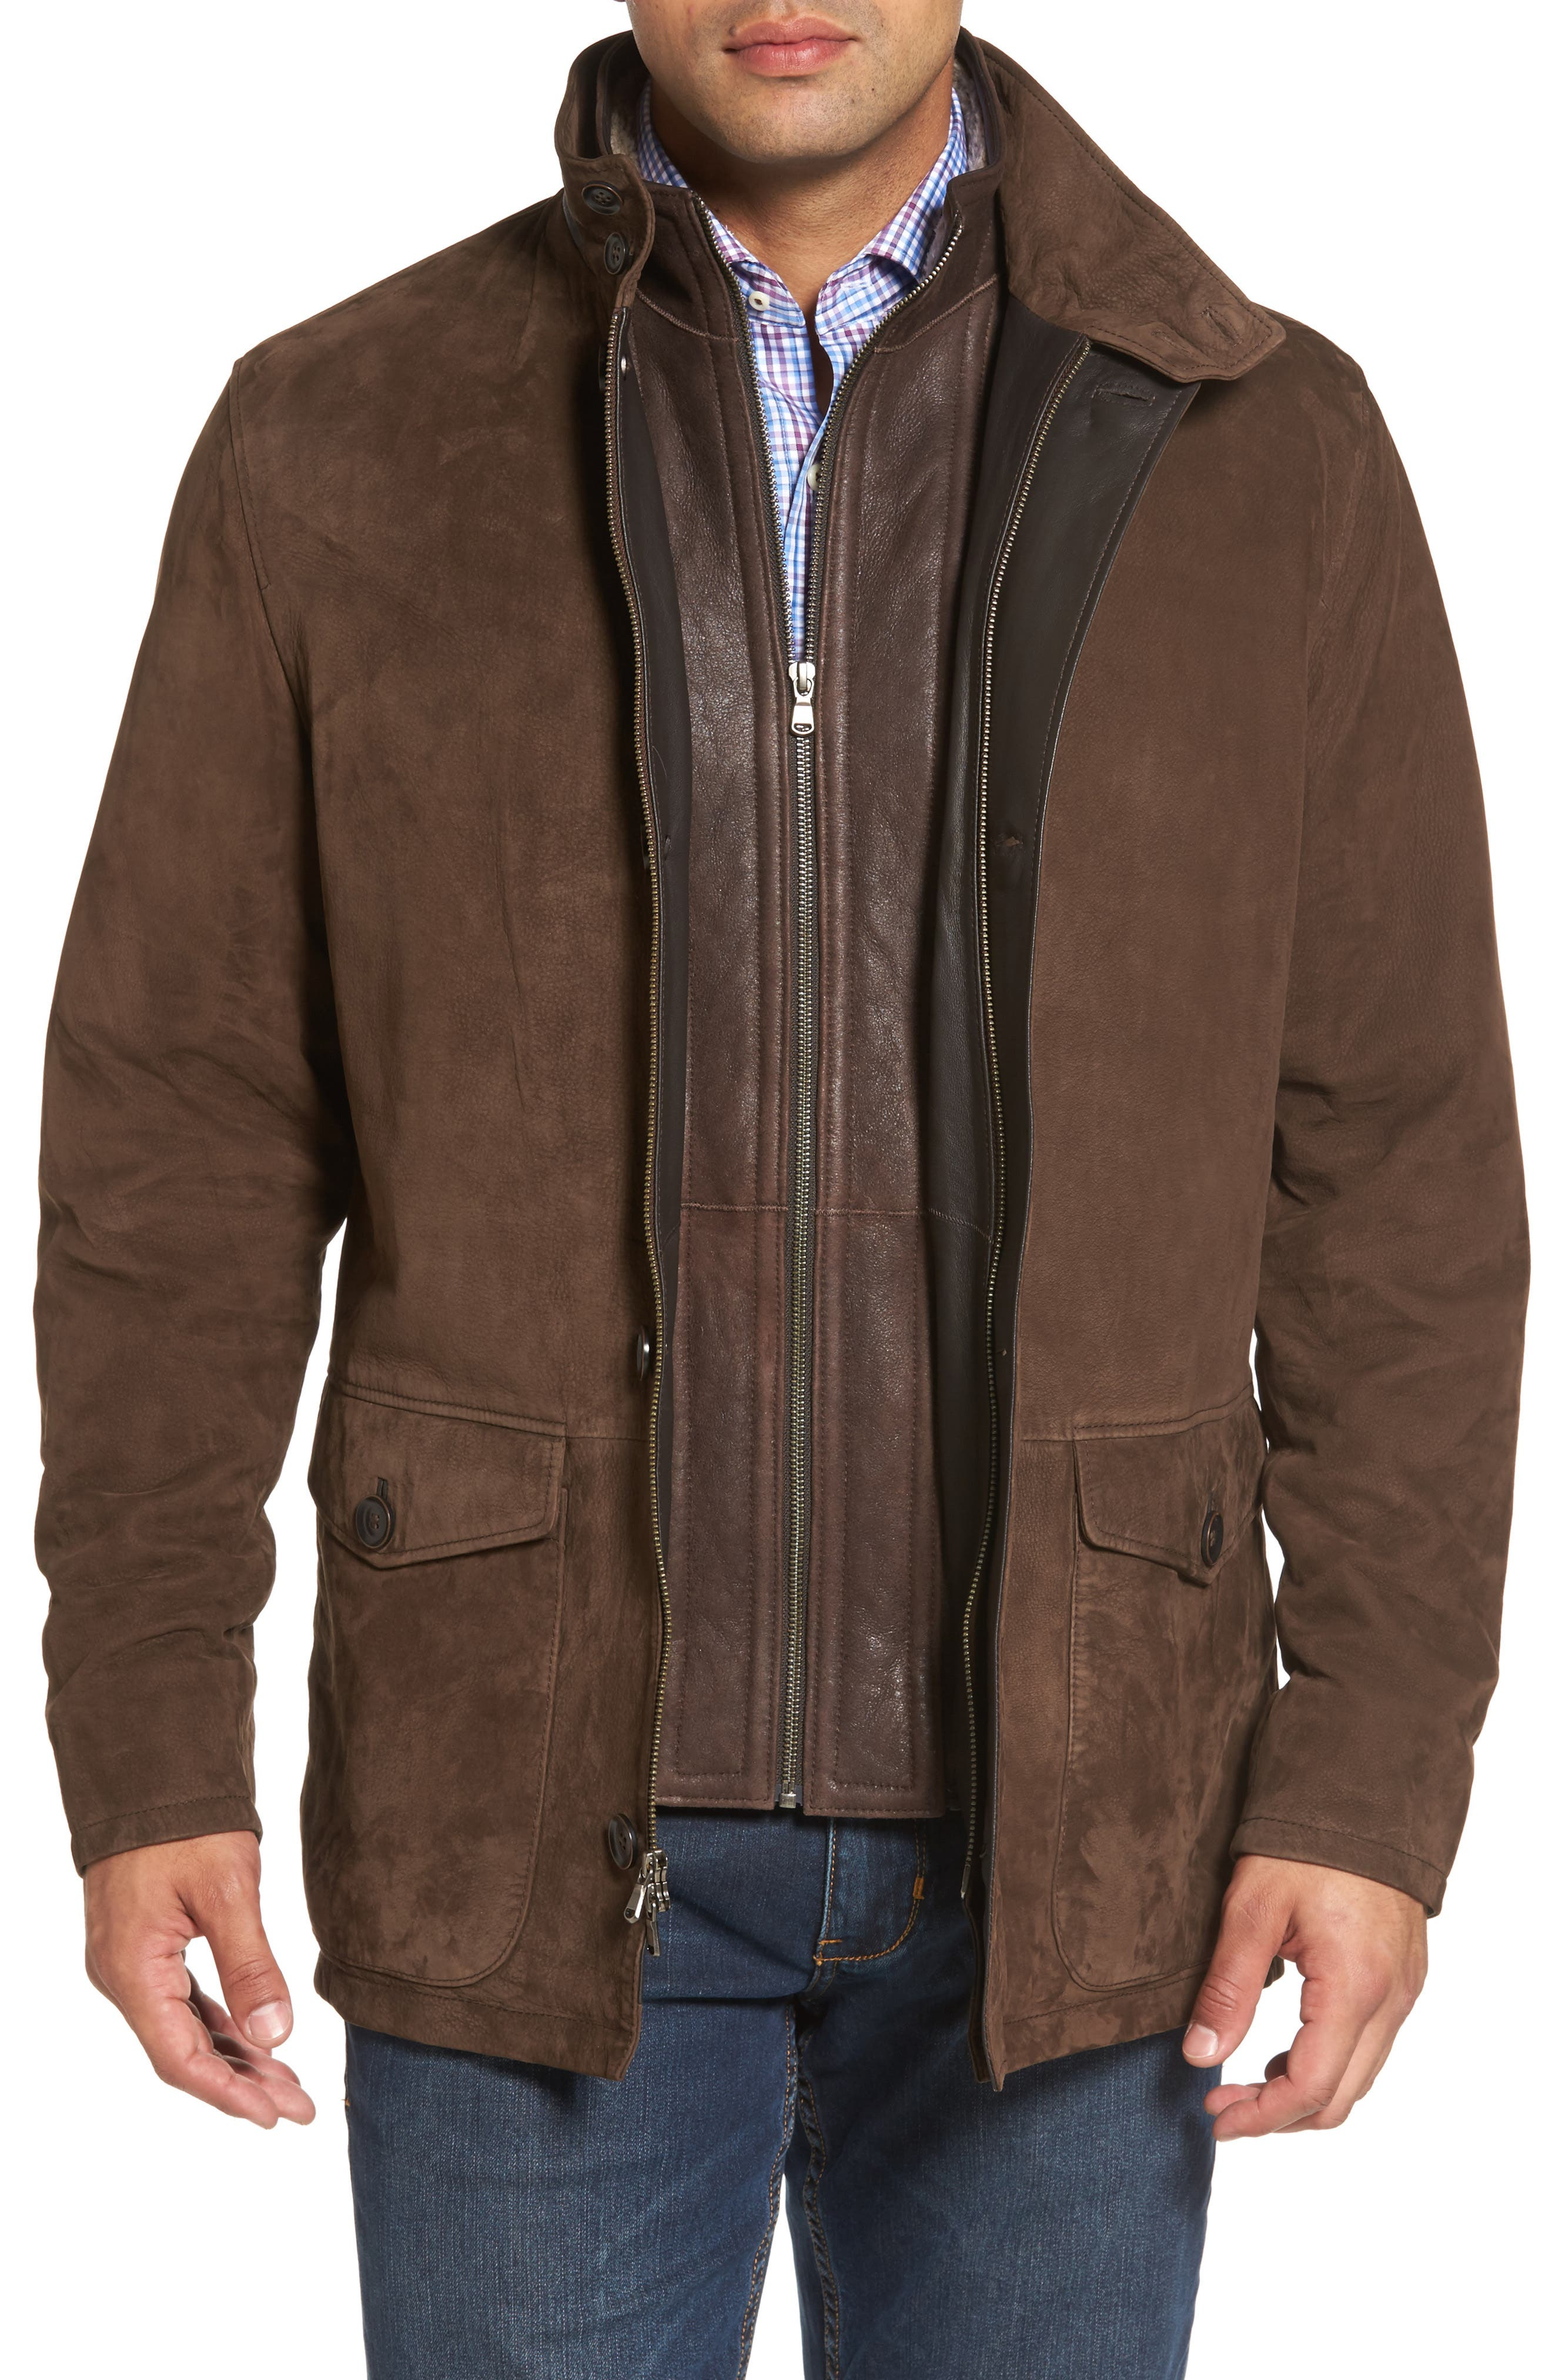 Alternate Image 1 Selected - Peter Millar Steamboat Leather Jacket with Genuine Shearling Lined Bib